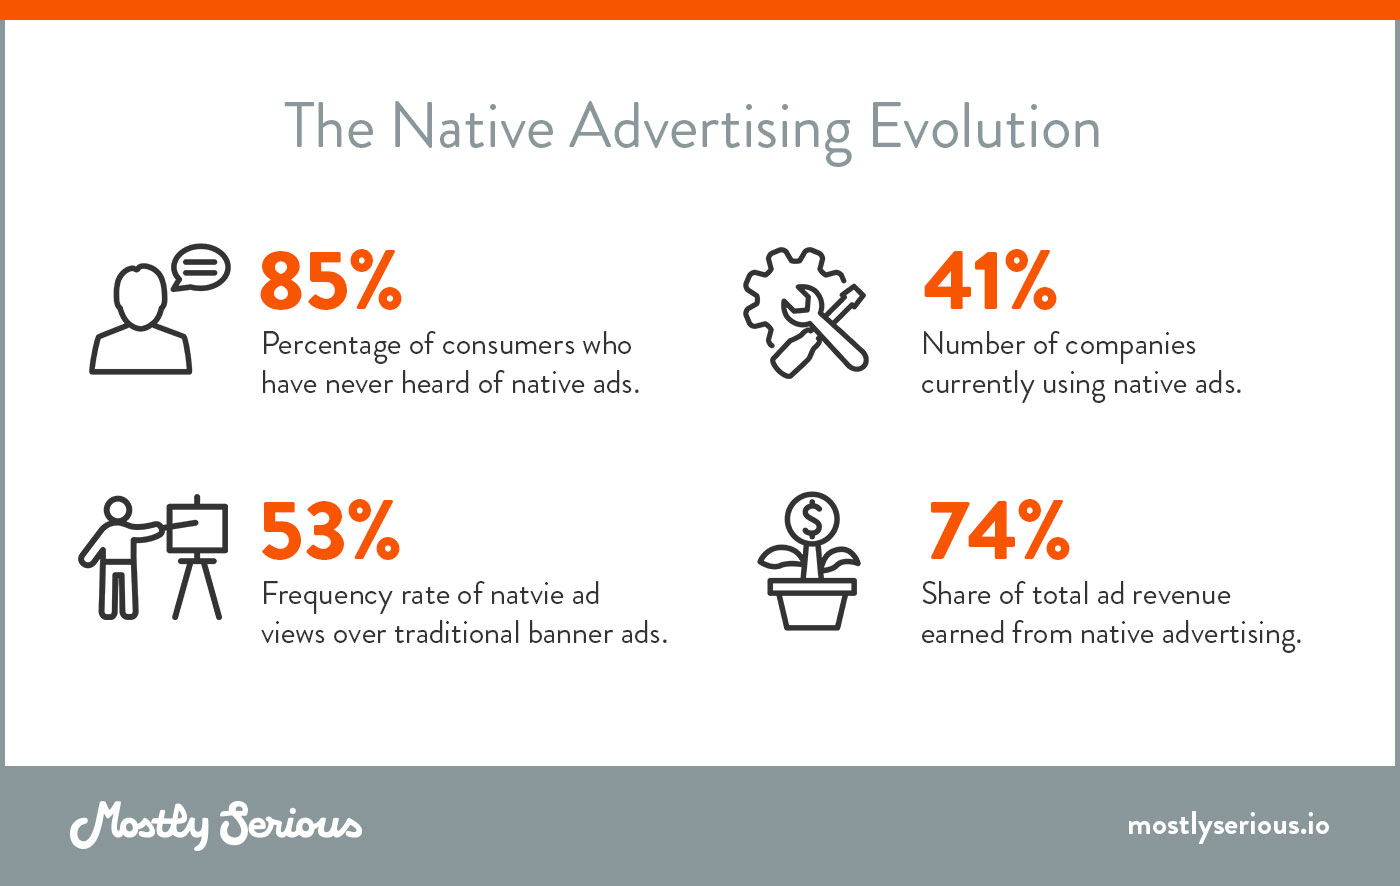 The Native Advertising Expansion